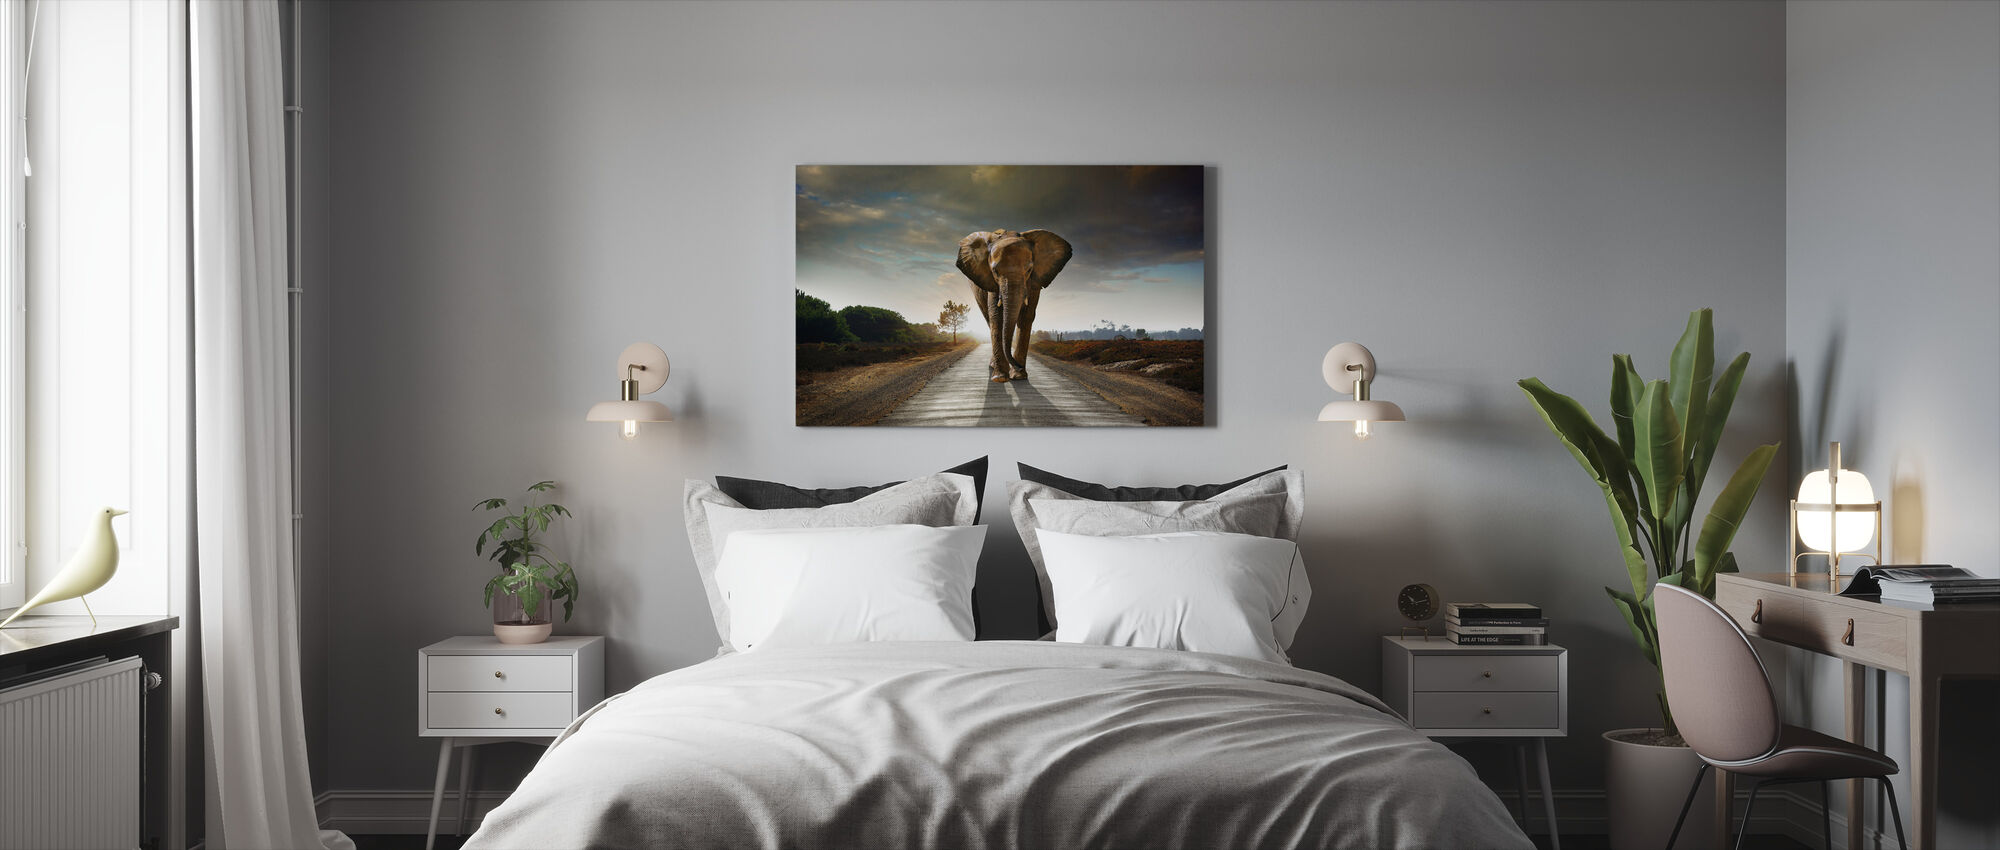 Elephant Road - Canvas print - Bedroom